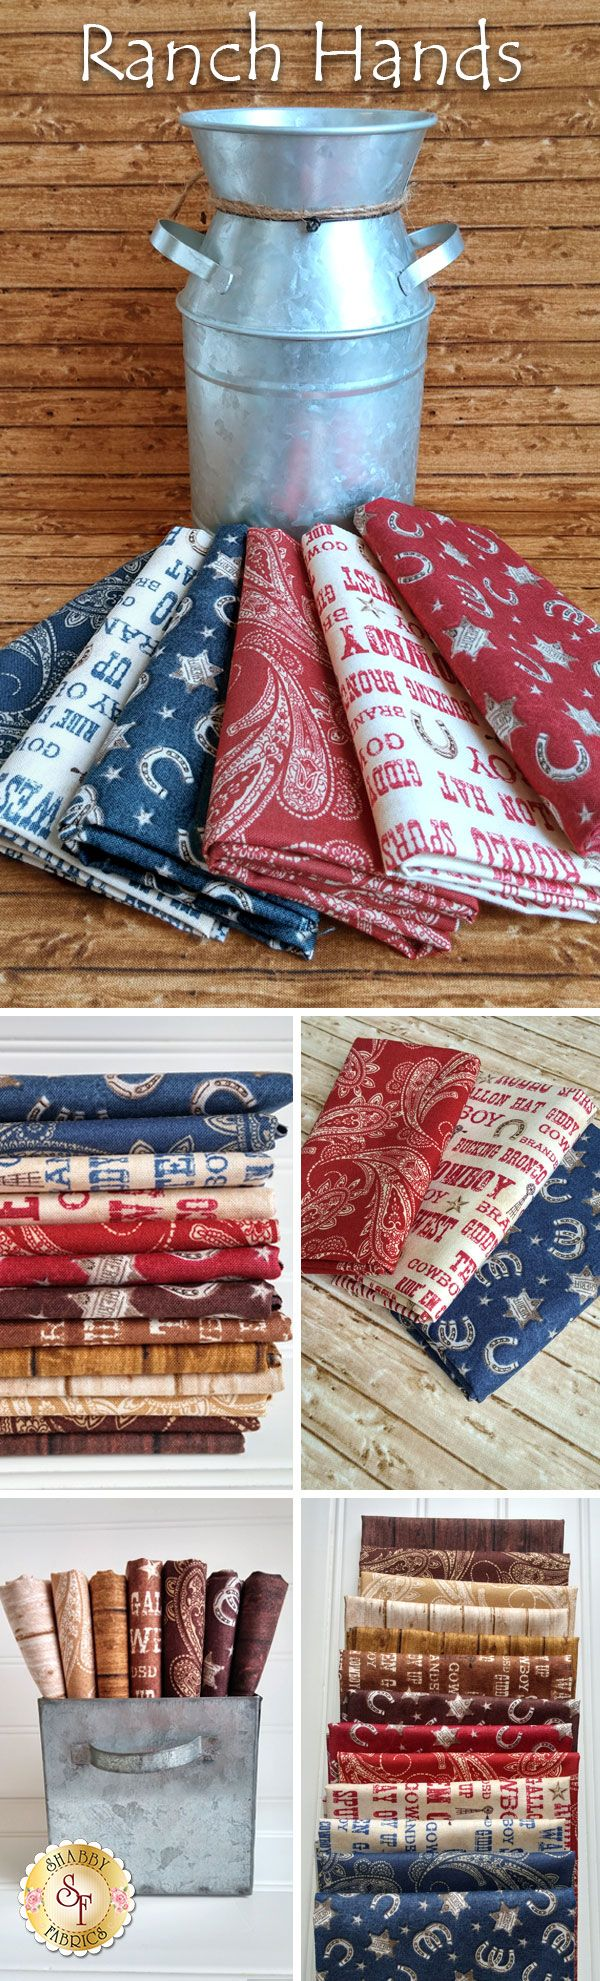 Ranch Hands by Whistler Studios for Windham Fabrics is a charming cowboy fabric collection available at Shabby Fabrics!